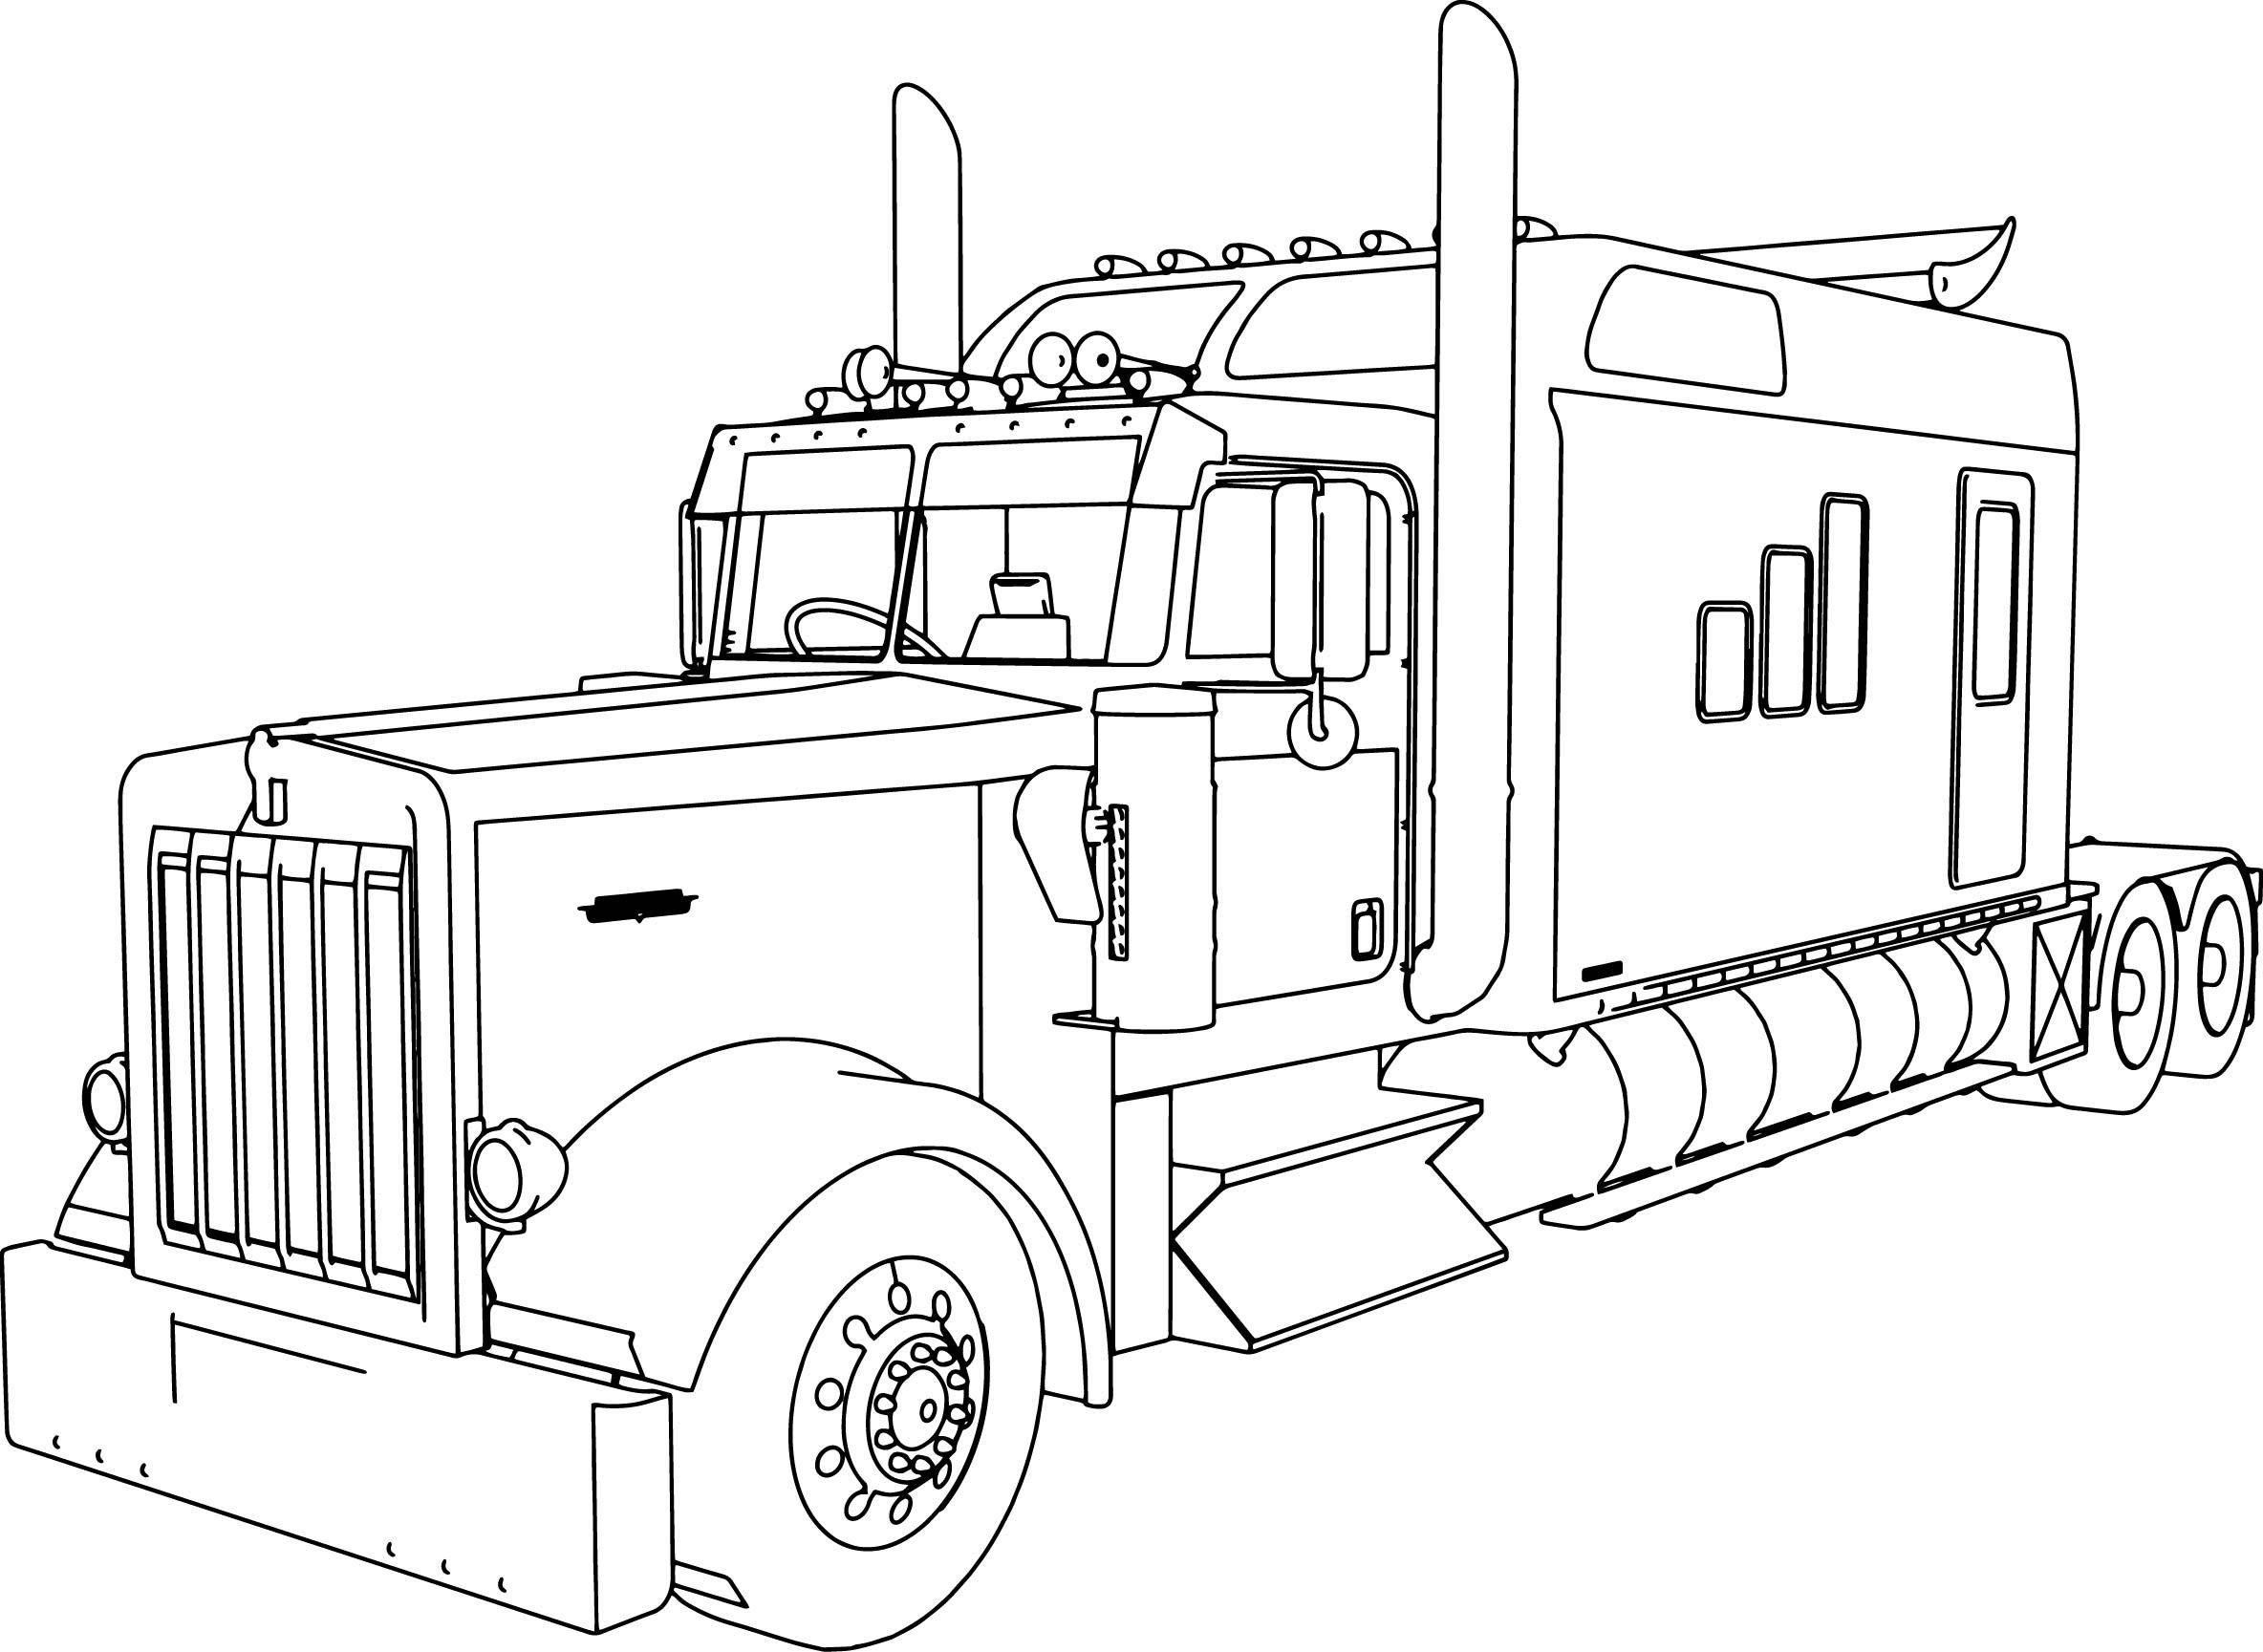 Semi Truck Coloring Pages Truck Coloring Pages Monster Truck Coloring Pages Cars Color In 2021 Truck Coloring Pages Monster Truck Coloring Pages Tractor Coloring Pages